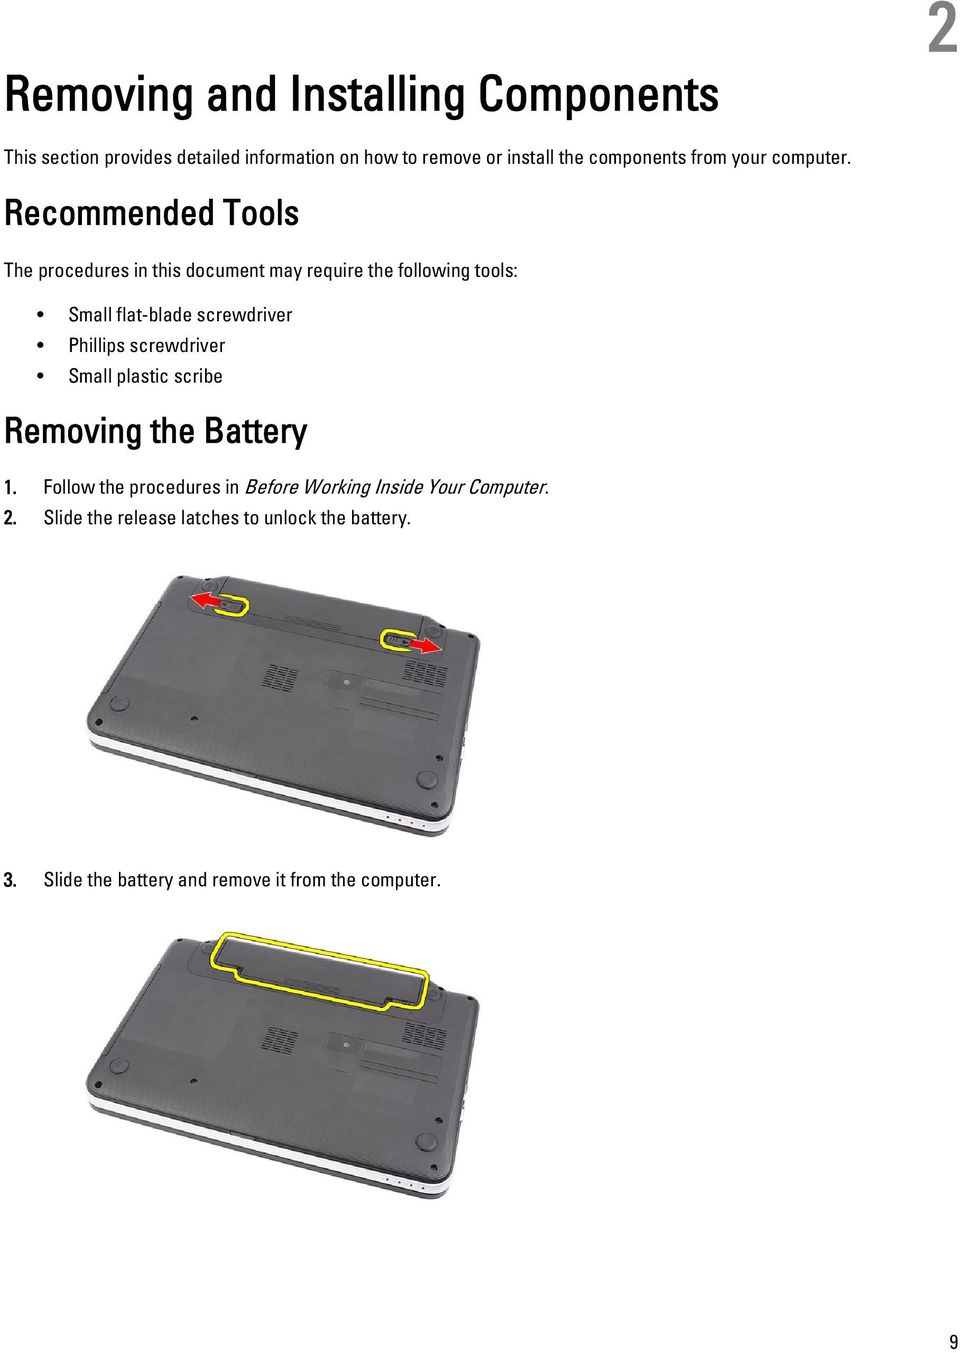 Recommended Tools The procedures in this document may require the following tools: Small flat-blade screwdriver Phillips